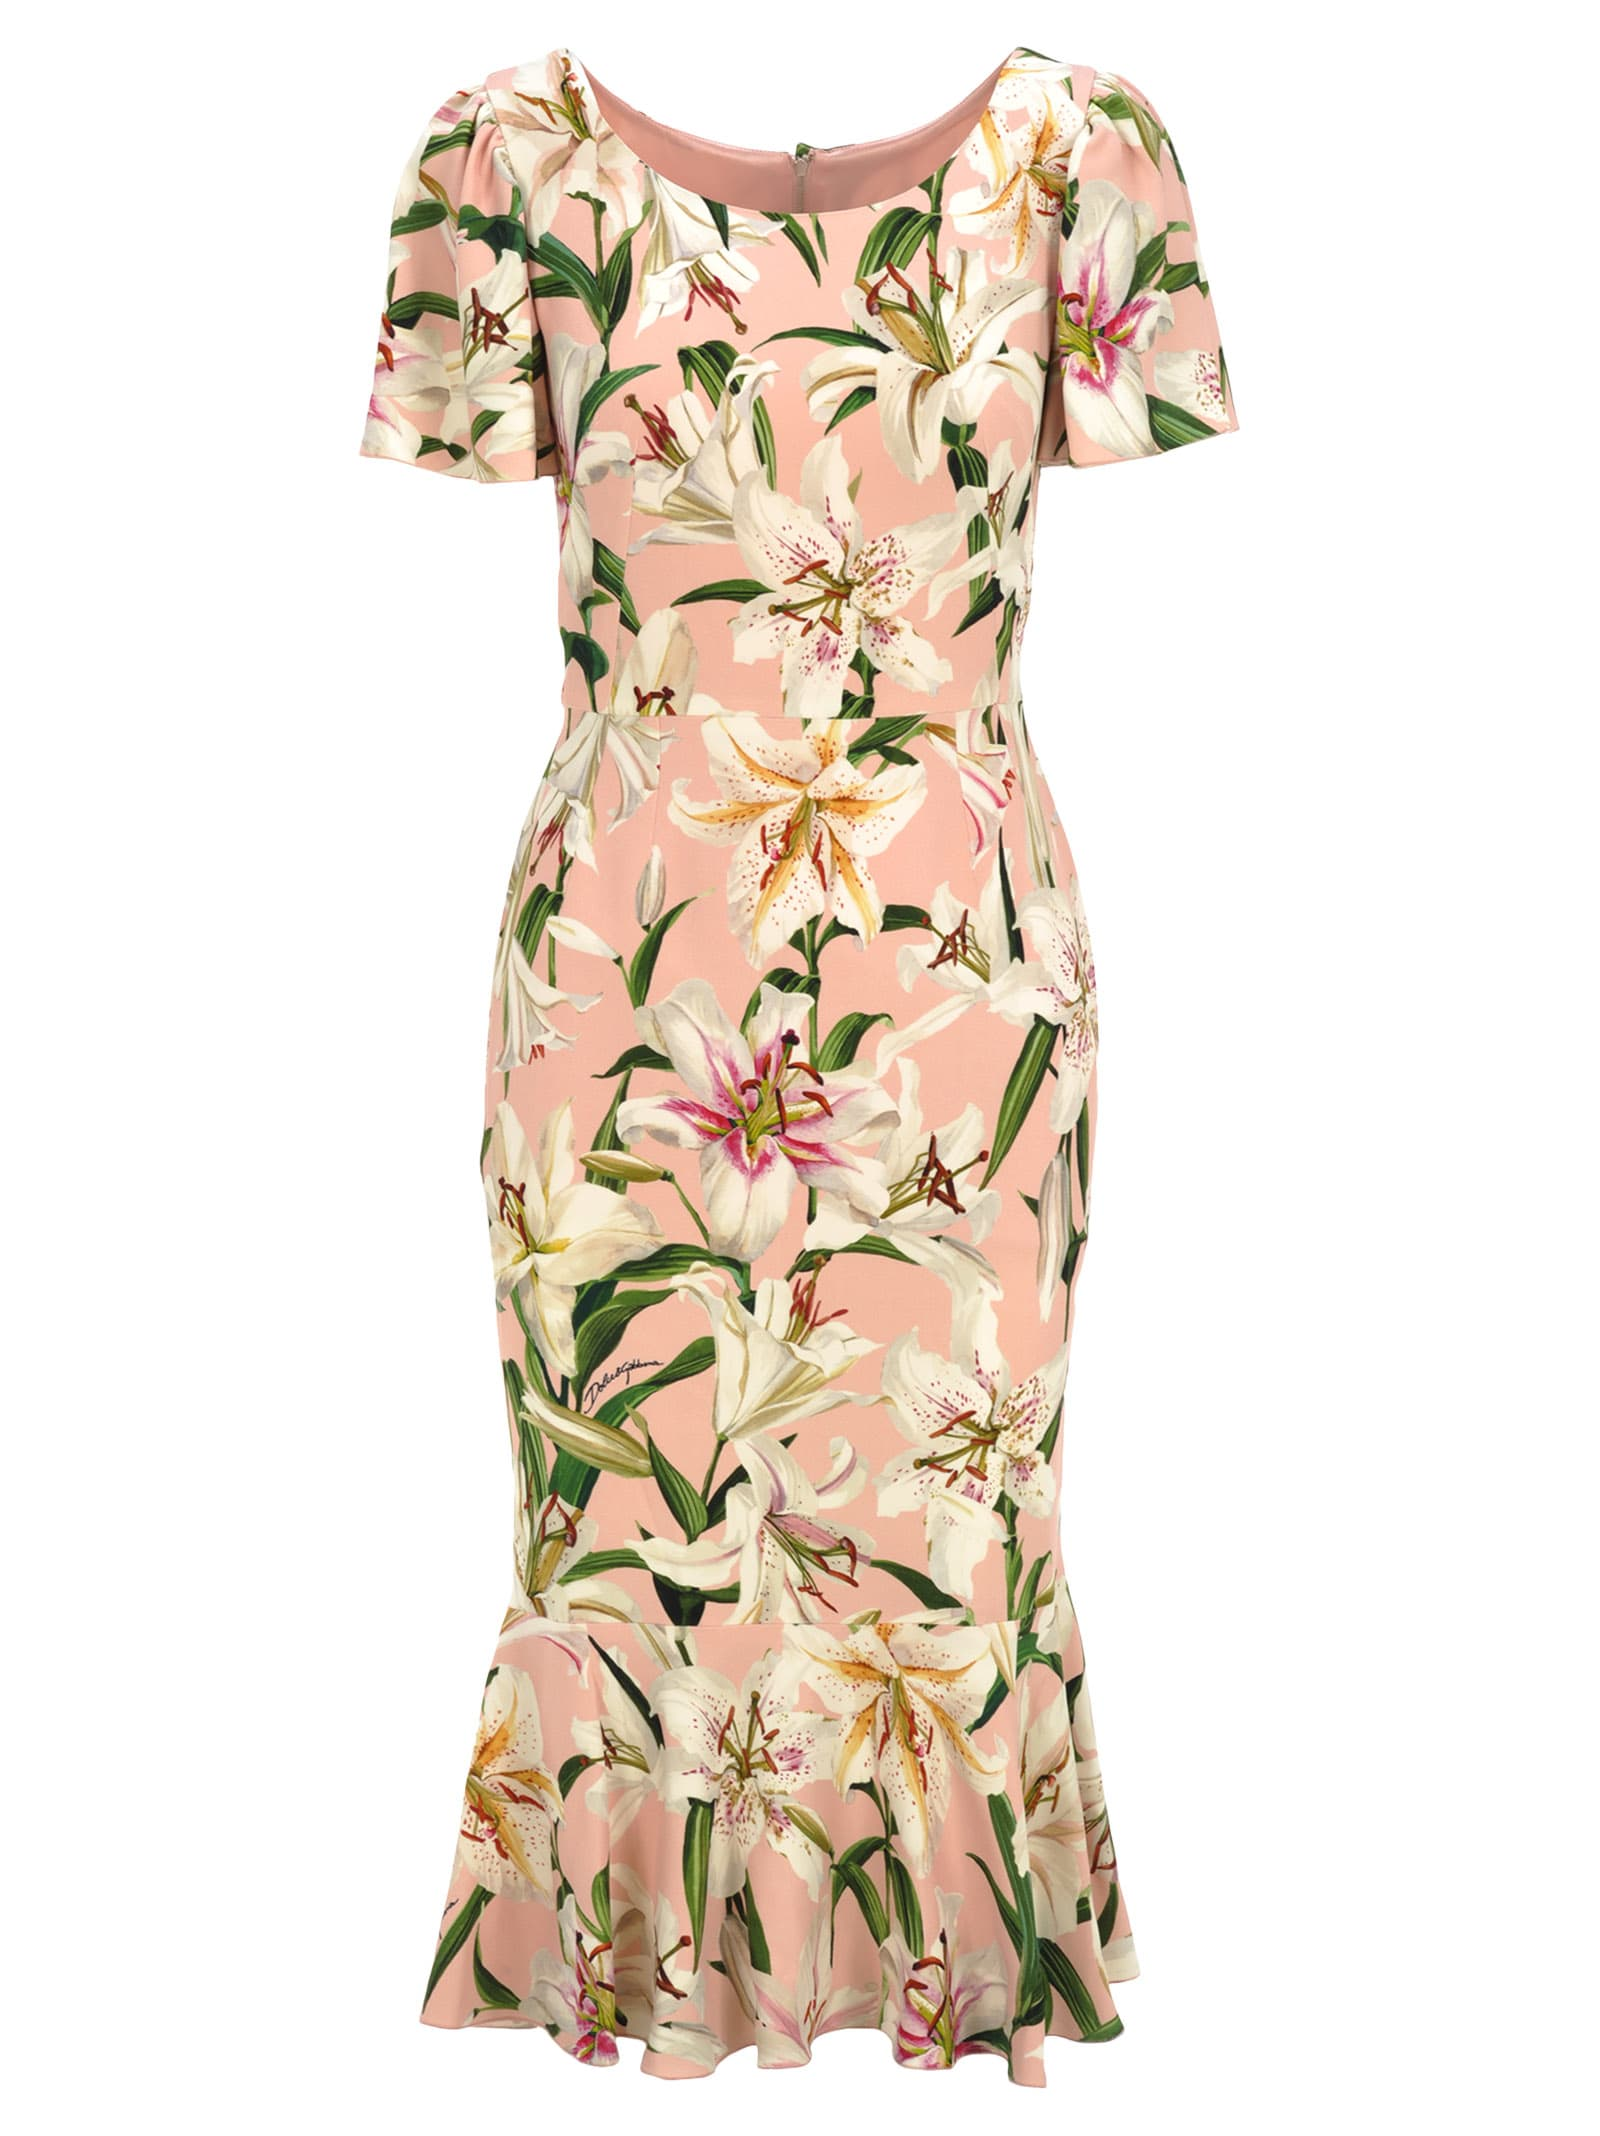 Dolce & gabbana Lilium Print Dress